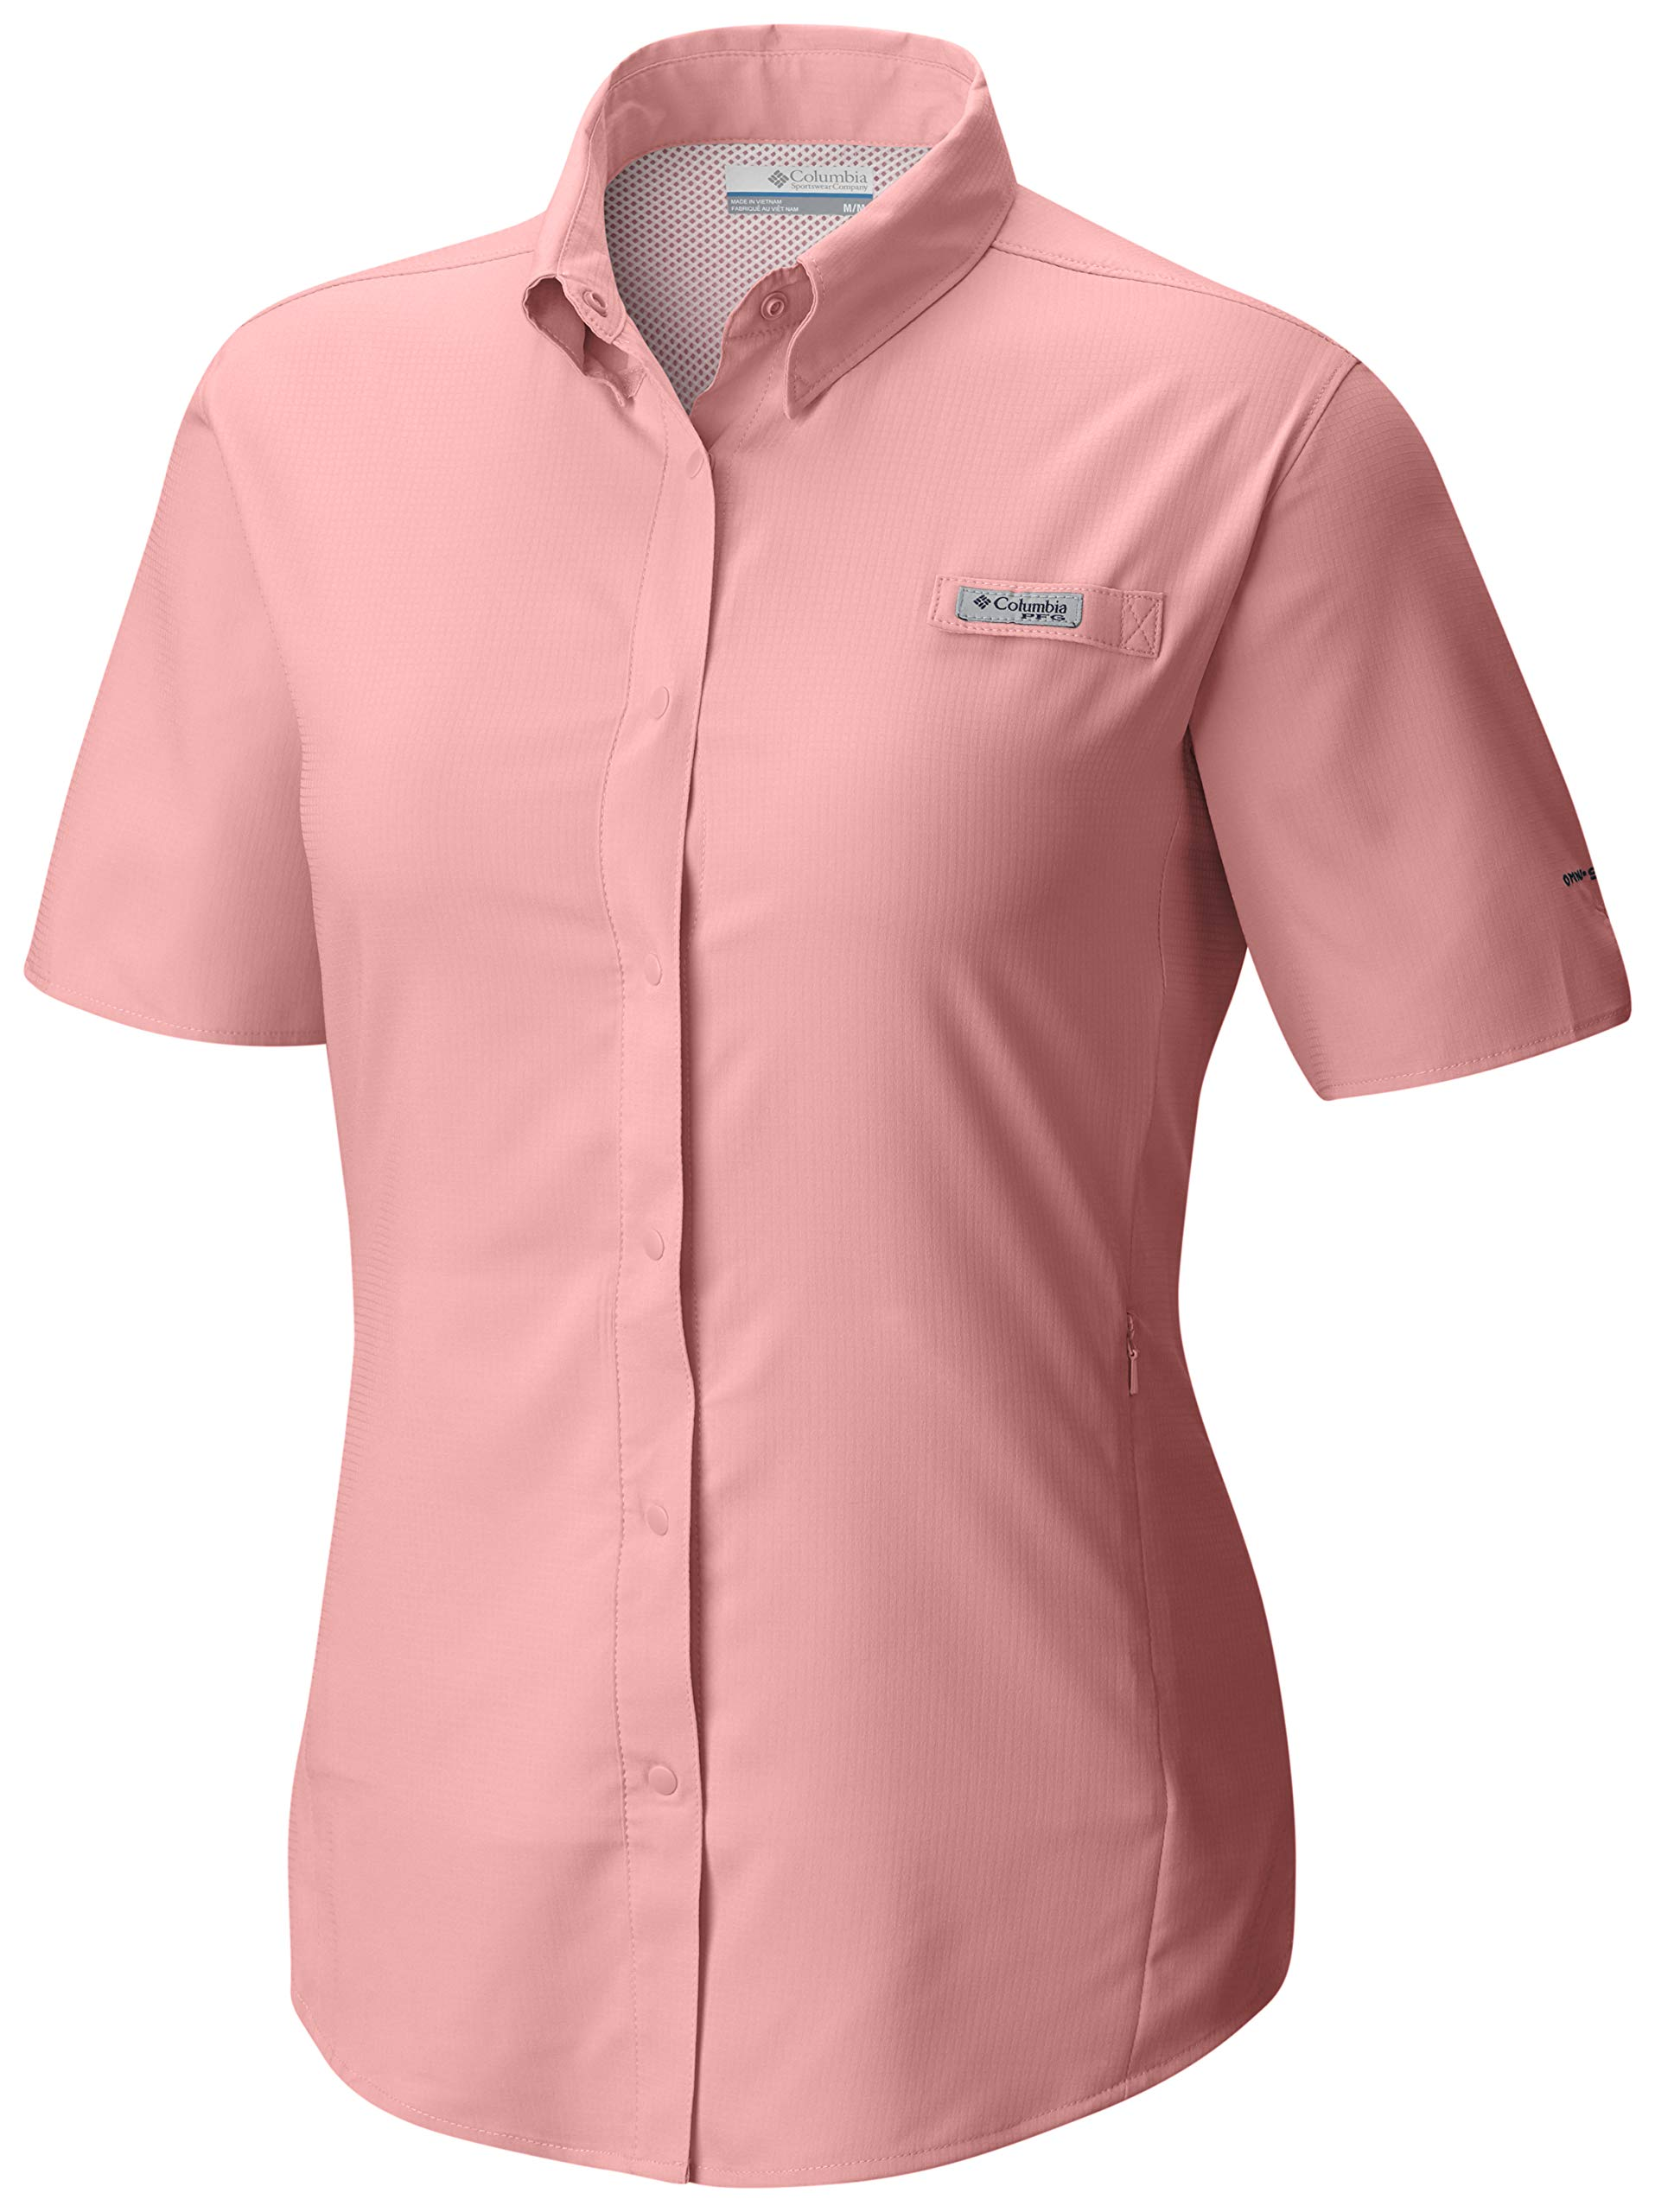 Columbia Standard Womens Tamiami II SS Shirt, Tiki Pink, X-Small by Columbia